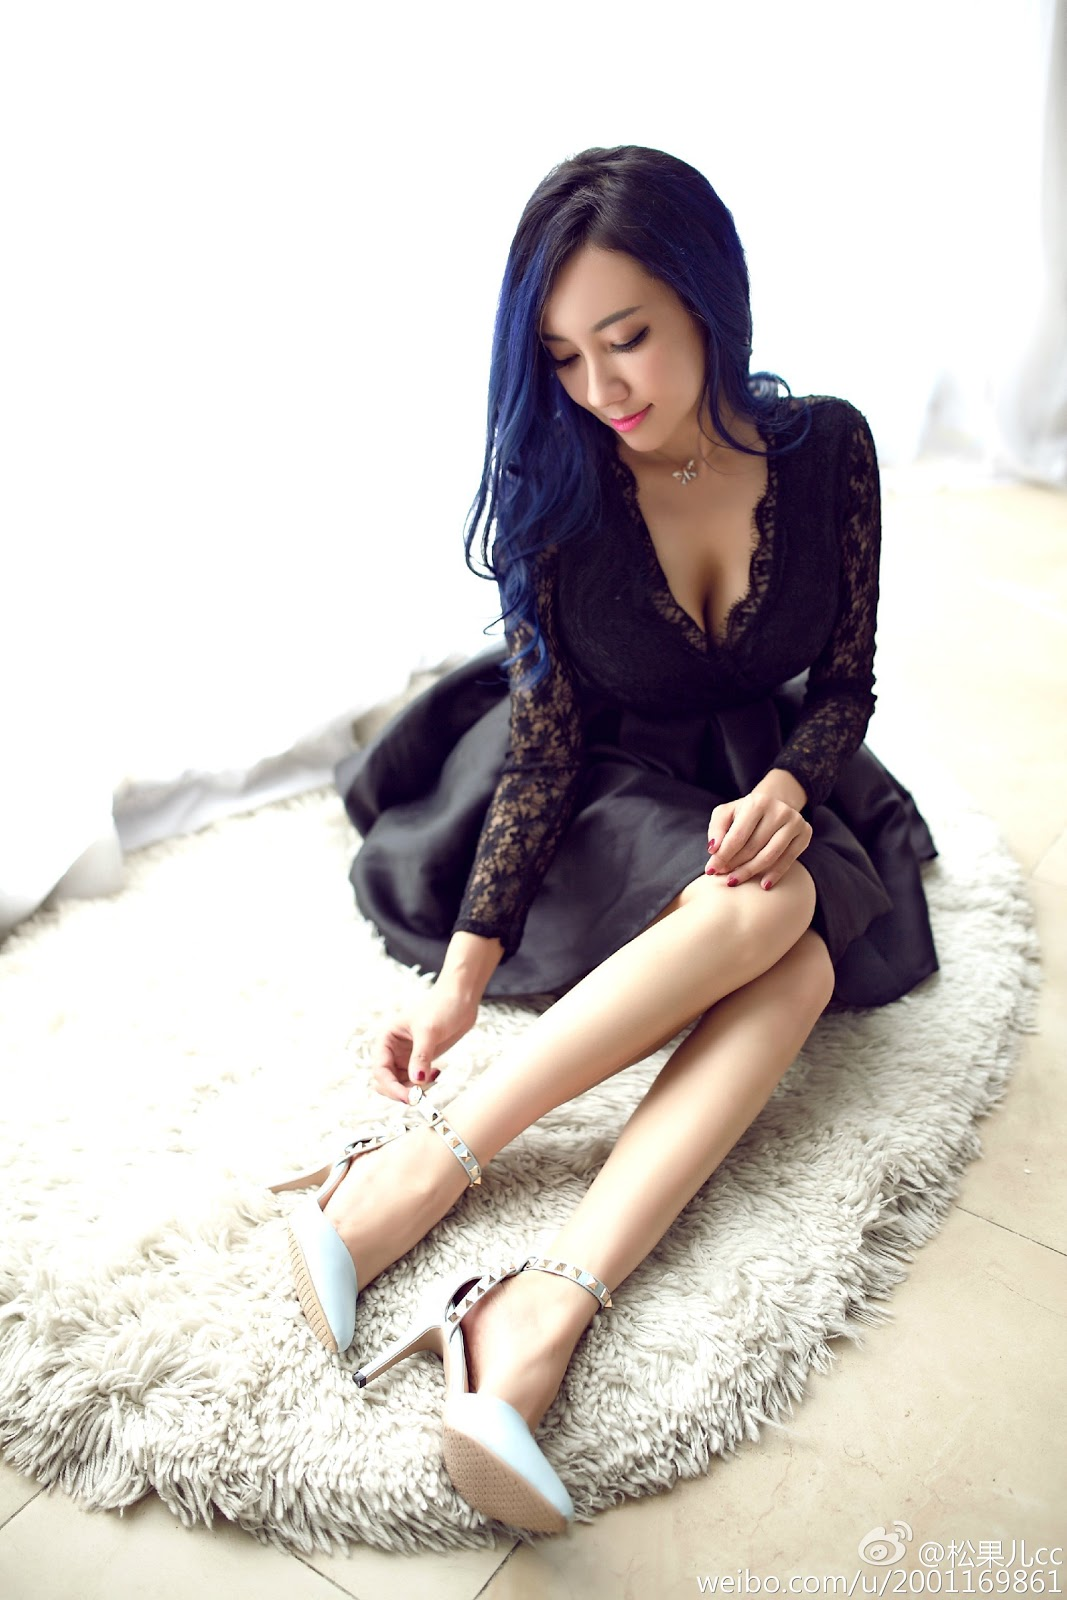 Preatty Asian Adult Model Song Guo Er 宋國洱 Sexiest Big Size Breast Hot Lingerie